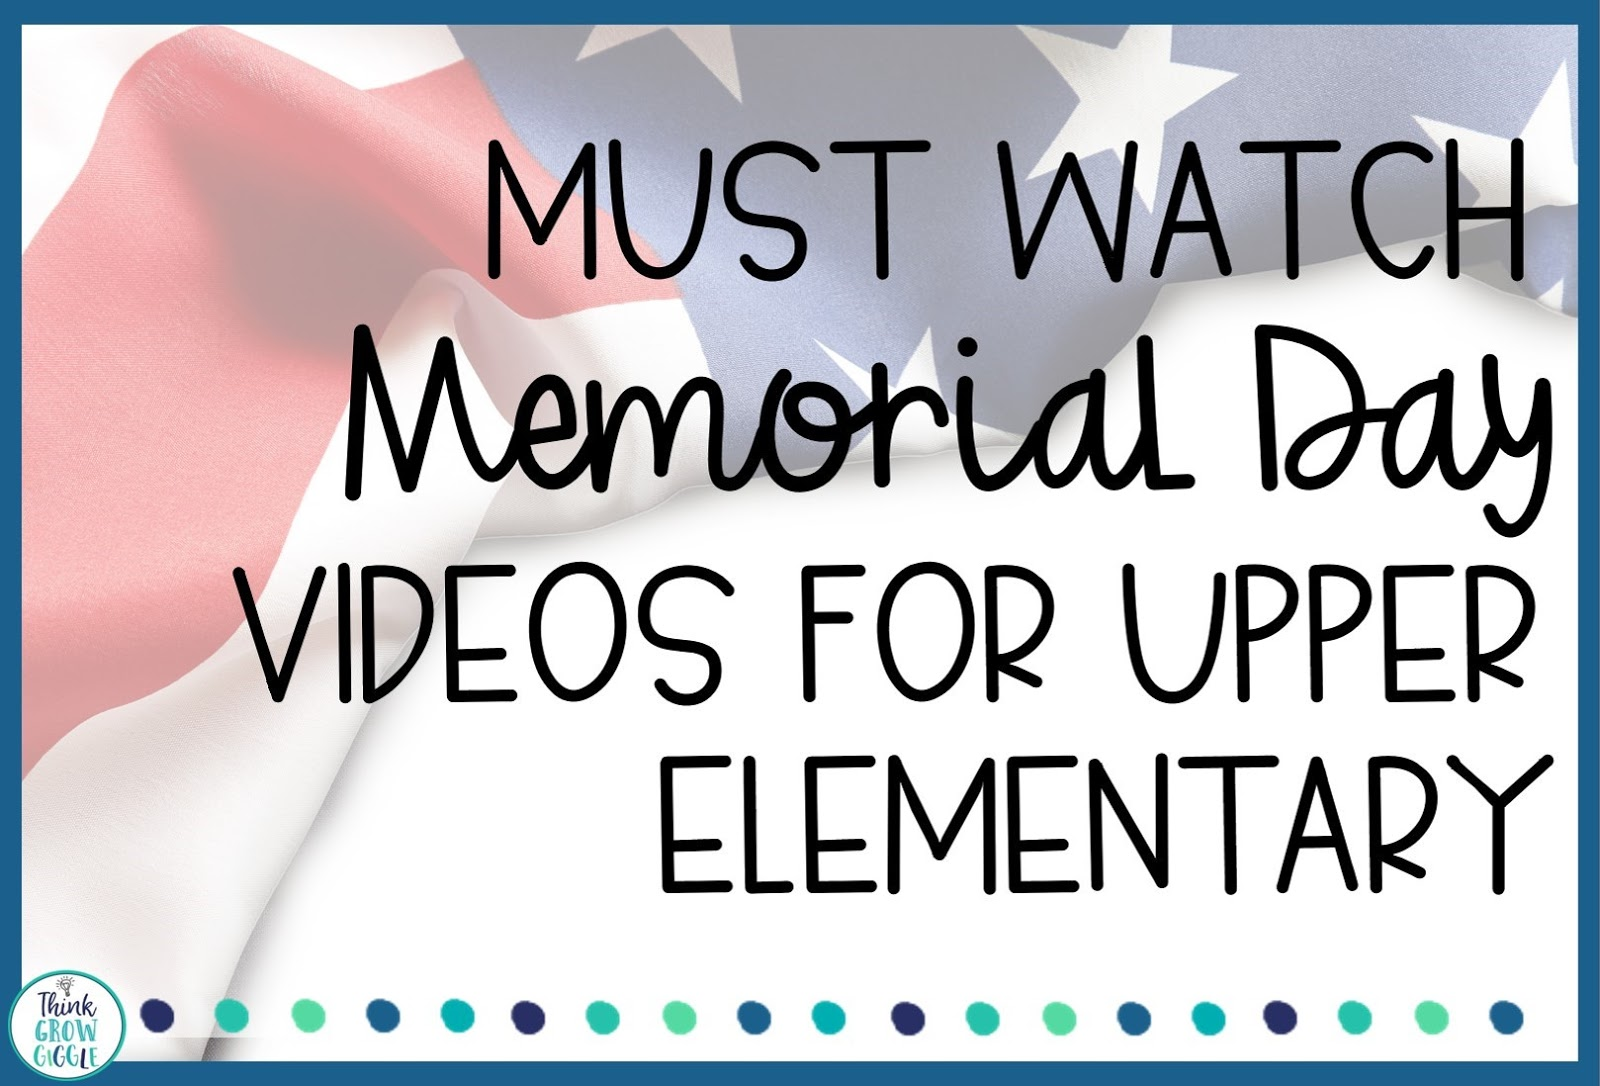 Must Watch Memorial Day Videos for history lessons elementary grades